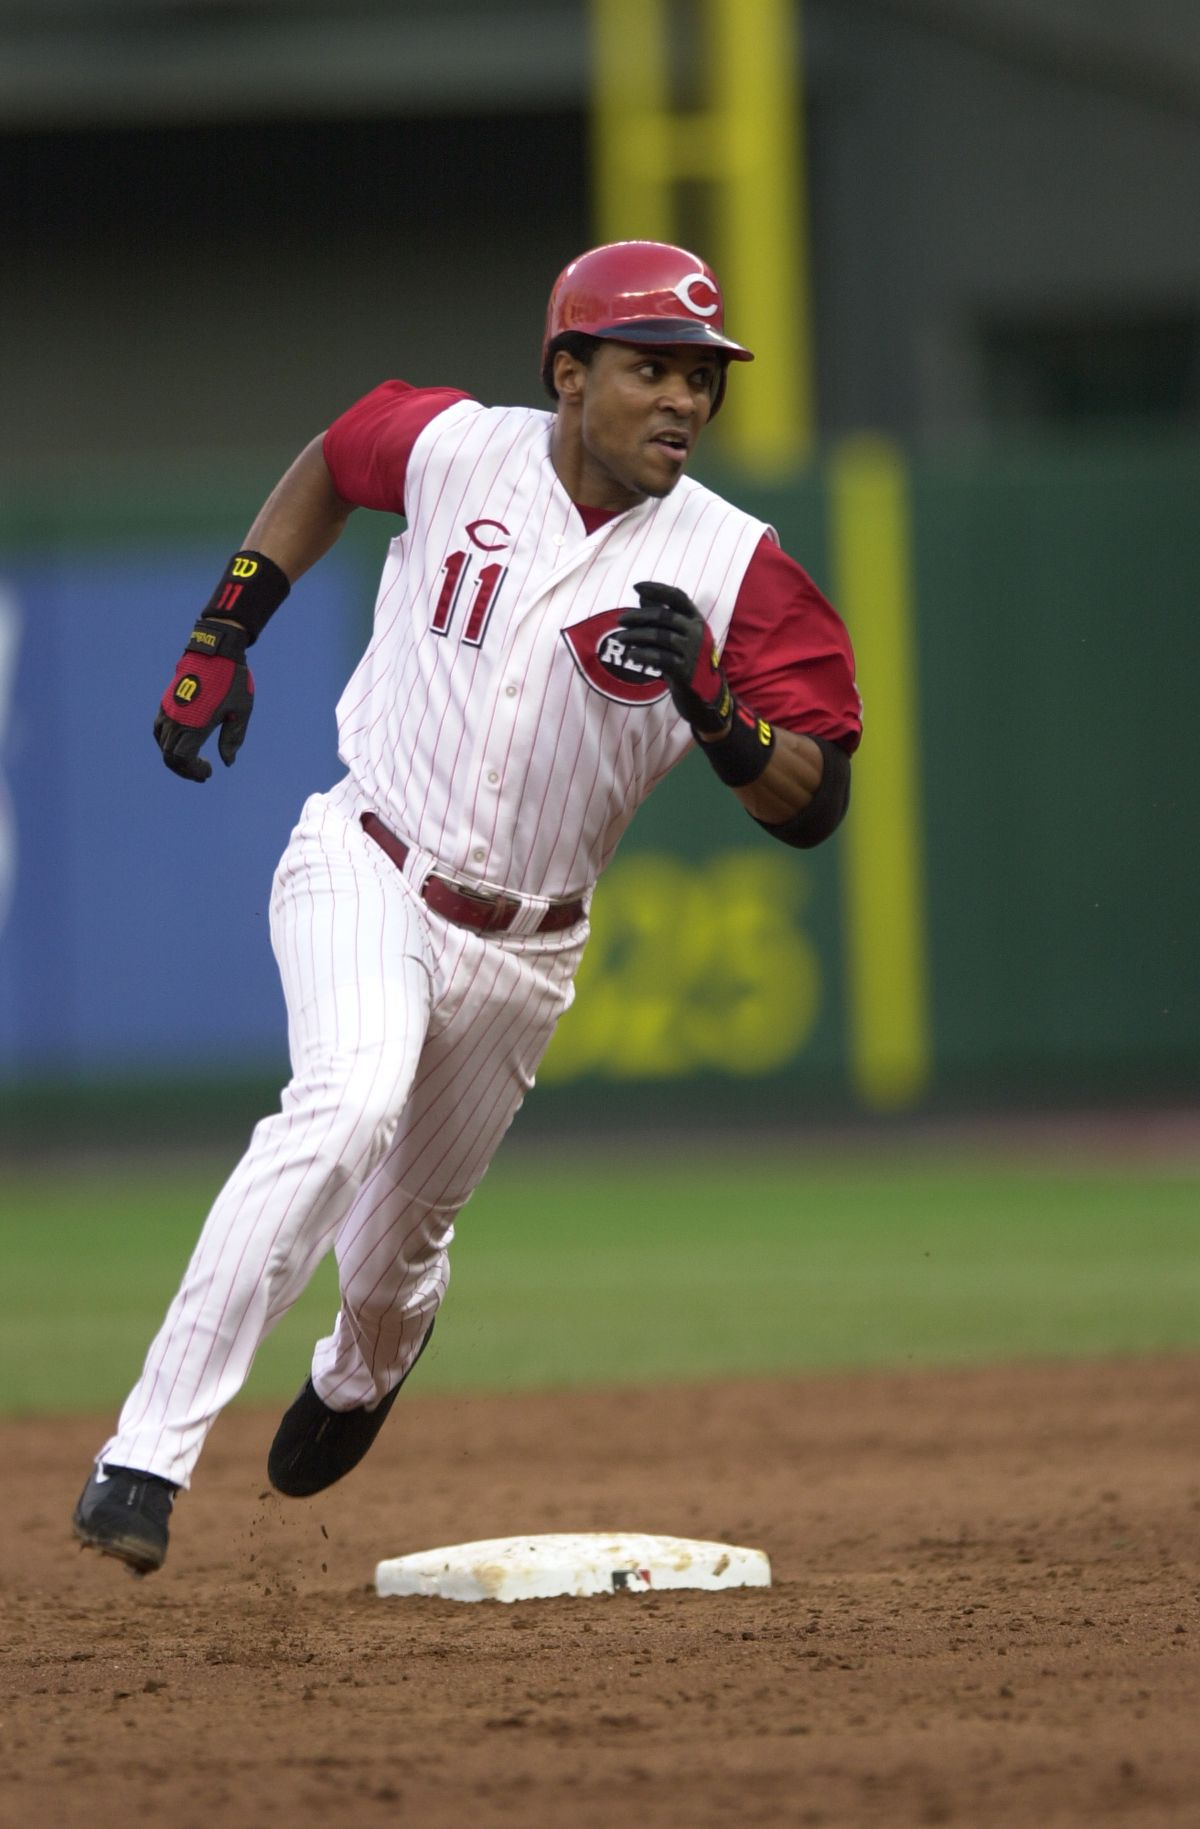 My Favorite Red Of All Time 11 Barry Larkin Barry Larkin Cincinnati Reds Baseball Cincinnati